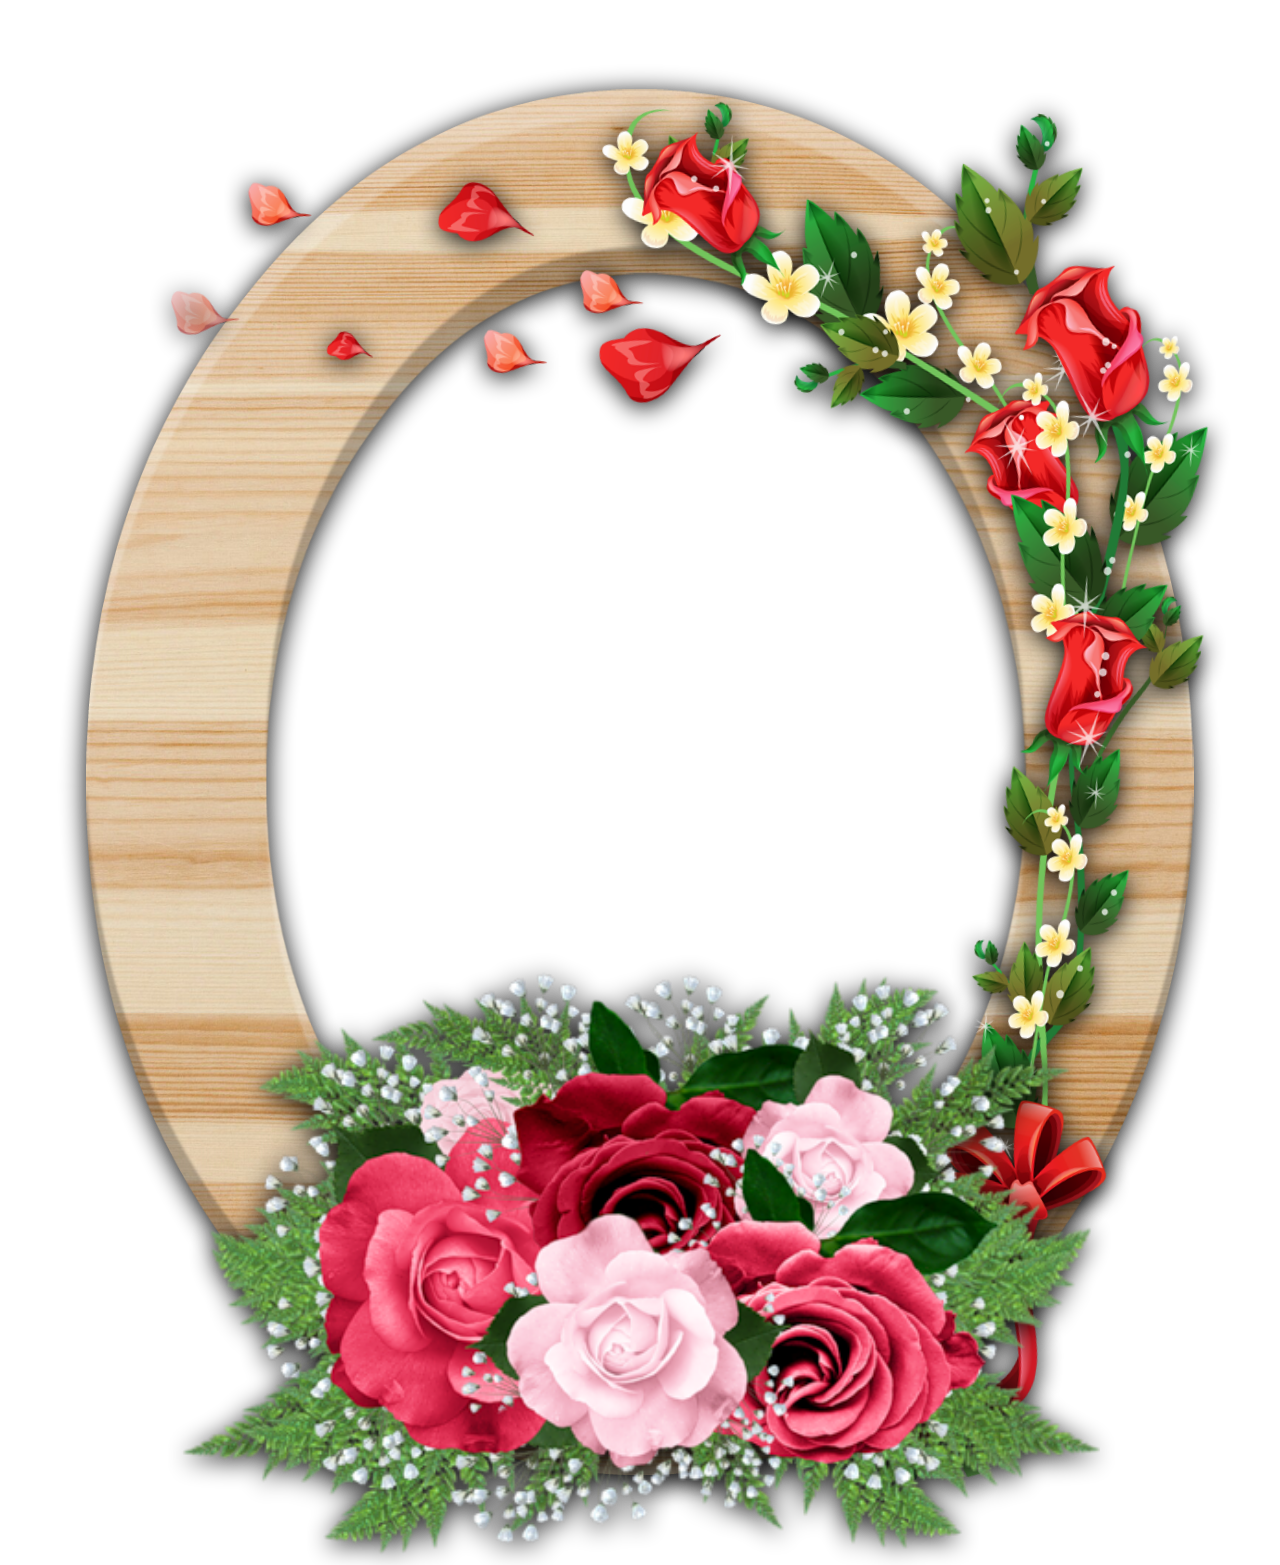 Flower frames clipart svg black and white stock Wooden and Flower Frame border by Gautam by GautamDas1992 on DeviantArt svg black and white stock